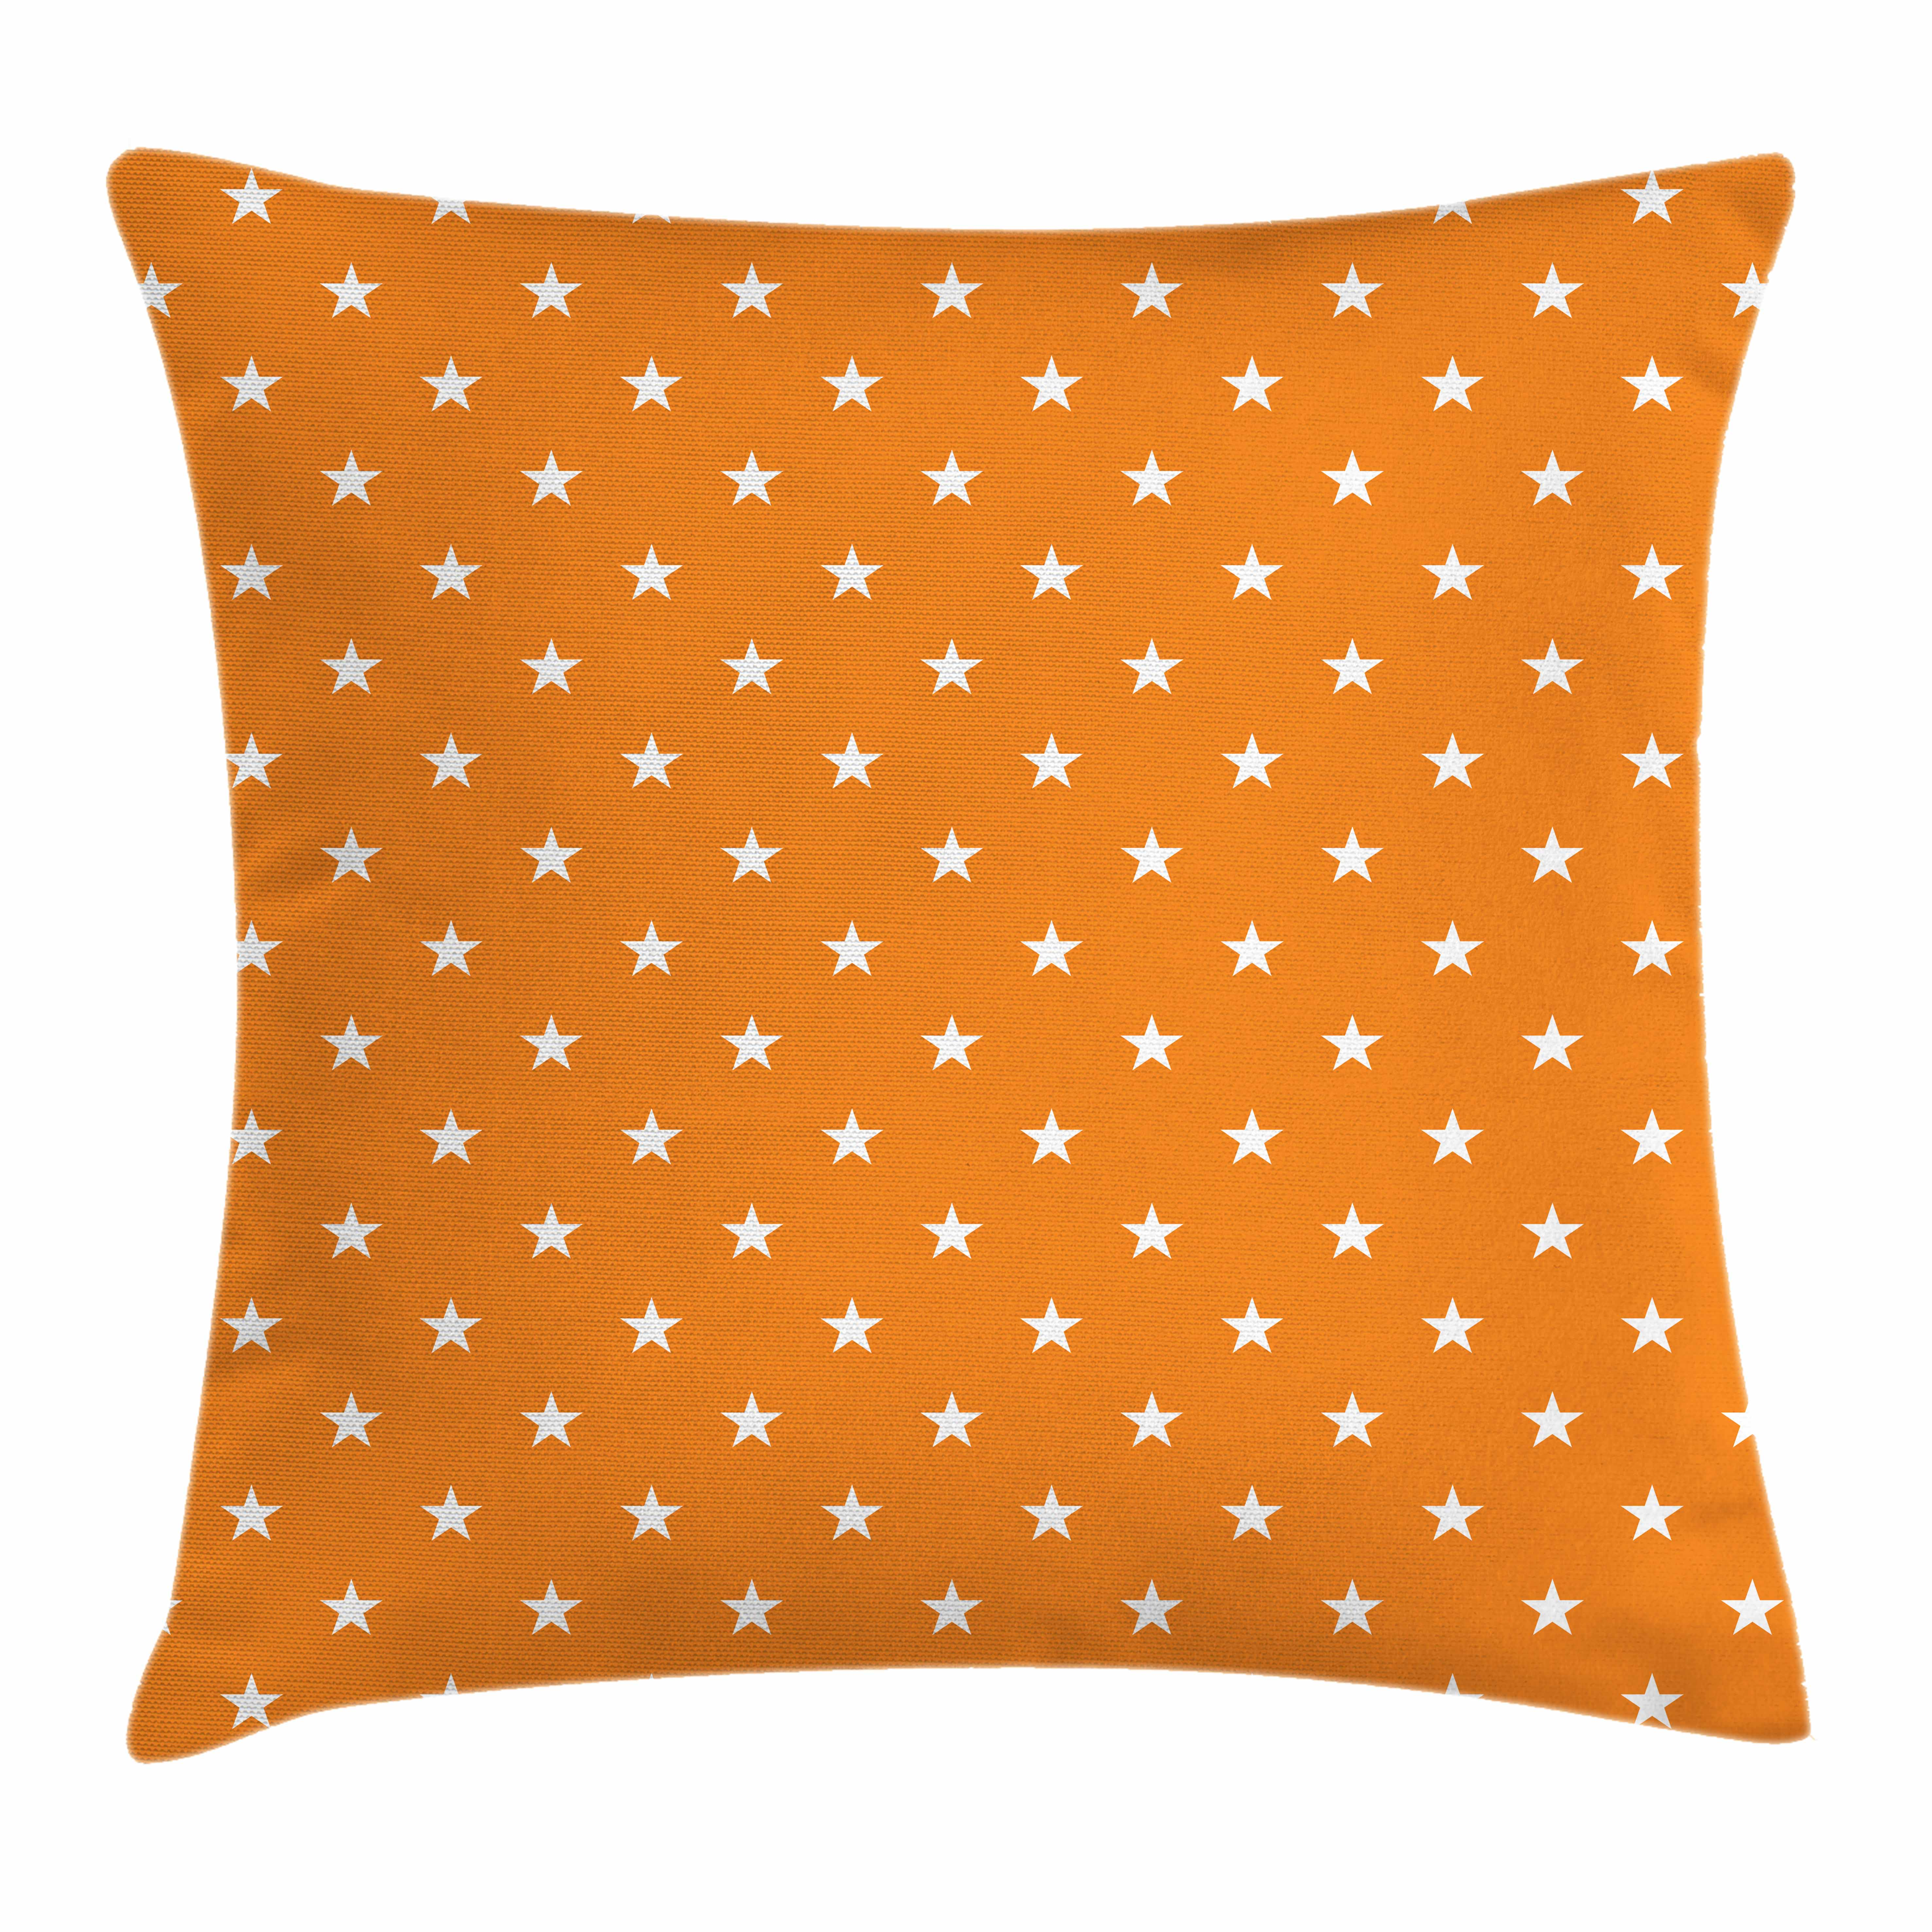 Stars Throw Pillow Cushion Cover, Abstract Warm Colored Background with Star Pattern Festive Celebration Pattern, Decorative Square Accent Pillow Case, 16 X 16 Inches, Orange White, by Ambesonne